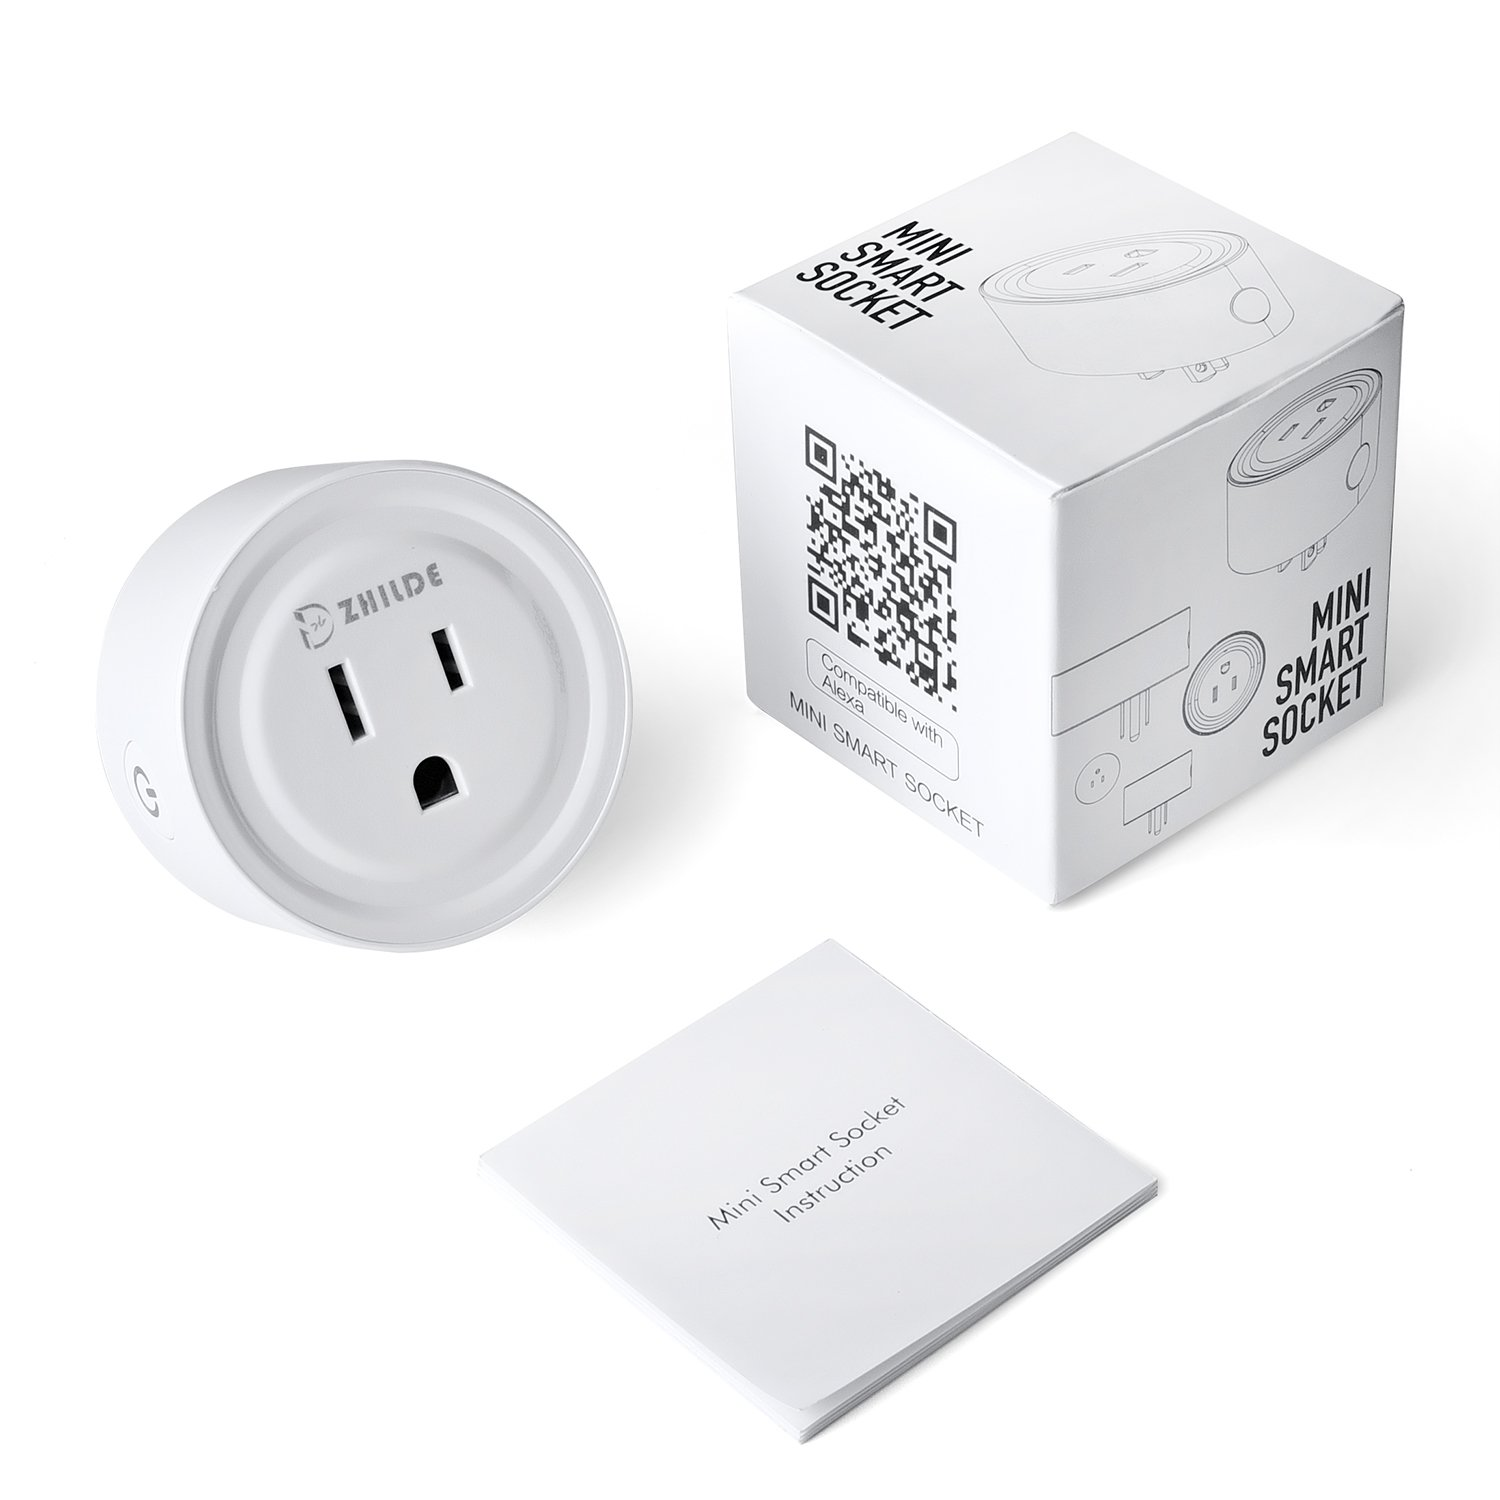 Mini Smart Plug,ZHILDE Wi-Fi Socket Outlet, Energy Monitoring with Timing Function, Compatible with Amazon Alexa Echo and Google Assistant, No Hub Required(ETL Listed) (1 Pack)